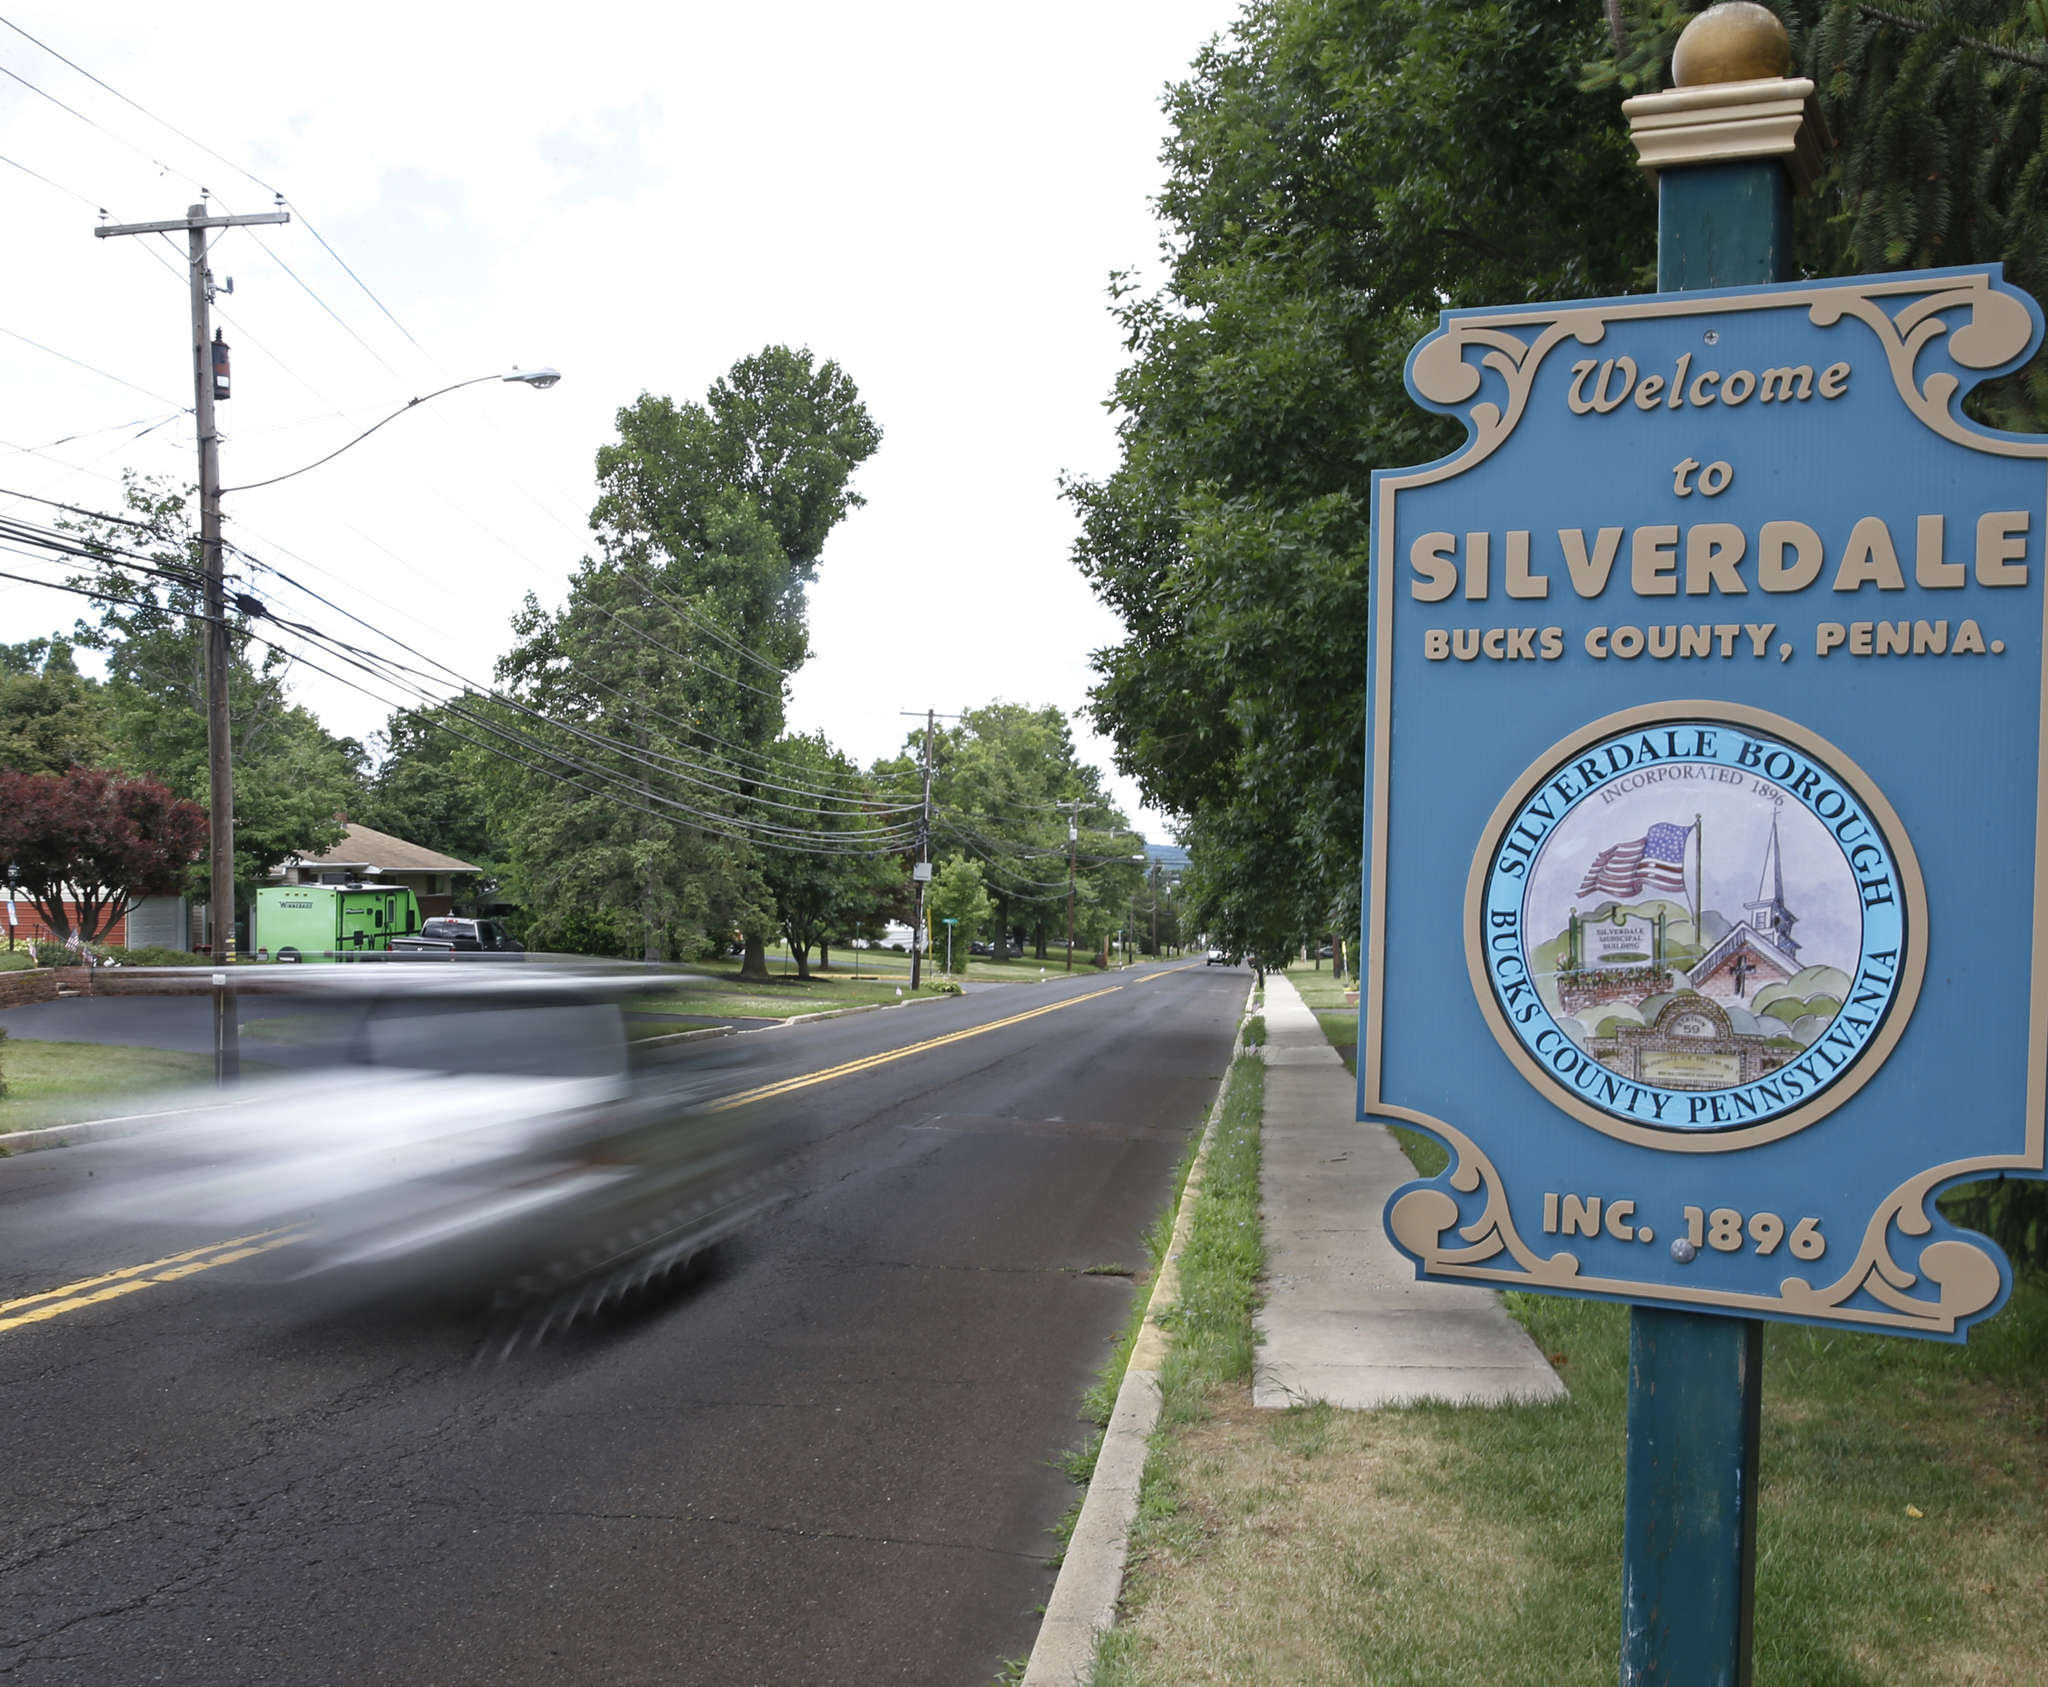 Silverdale´s welcome sign invites visitors into the tiny Bucks borough within commuting distance of Phila.